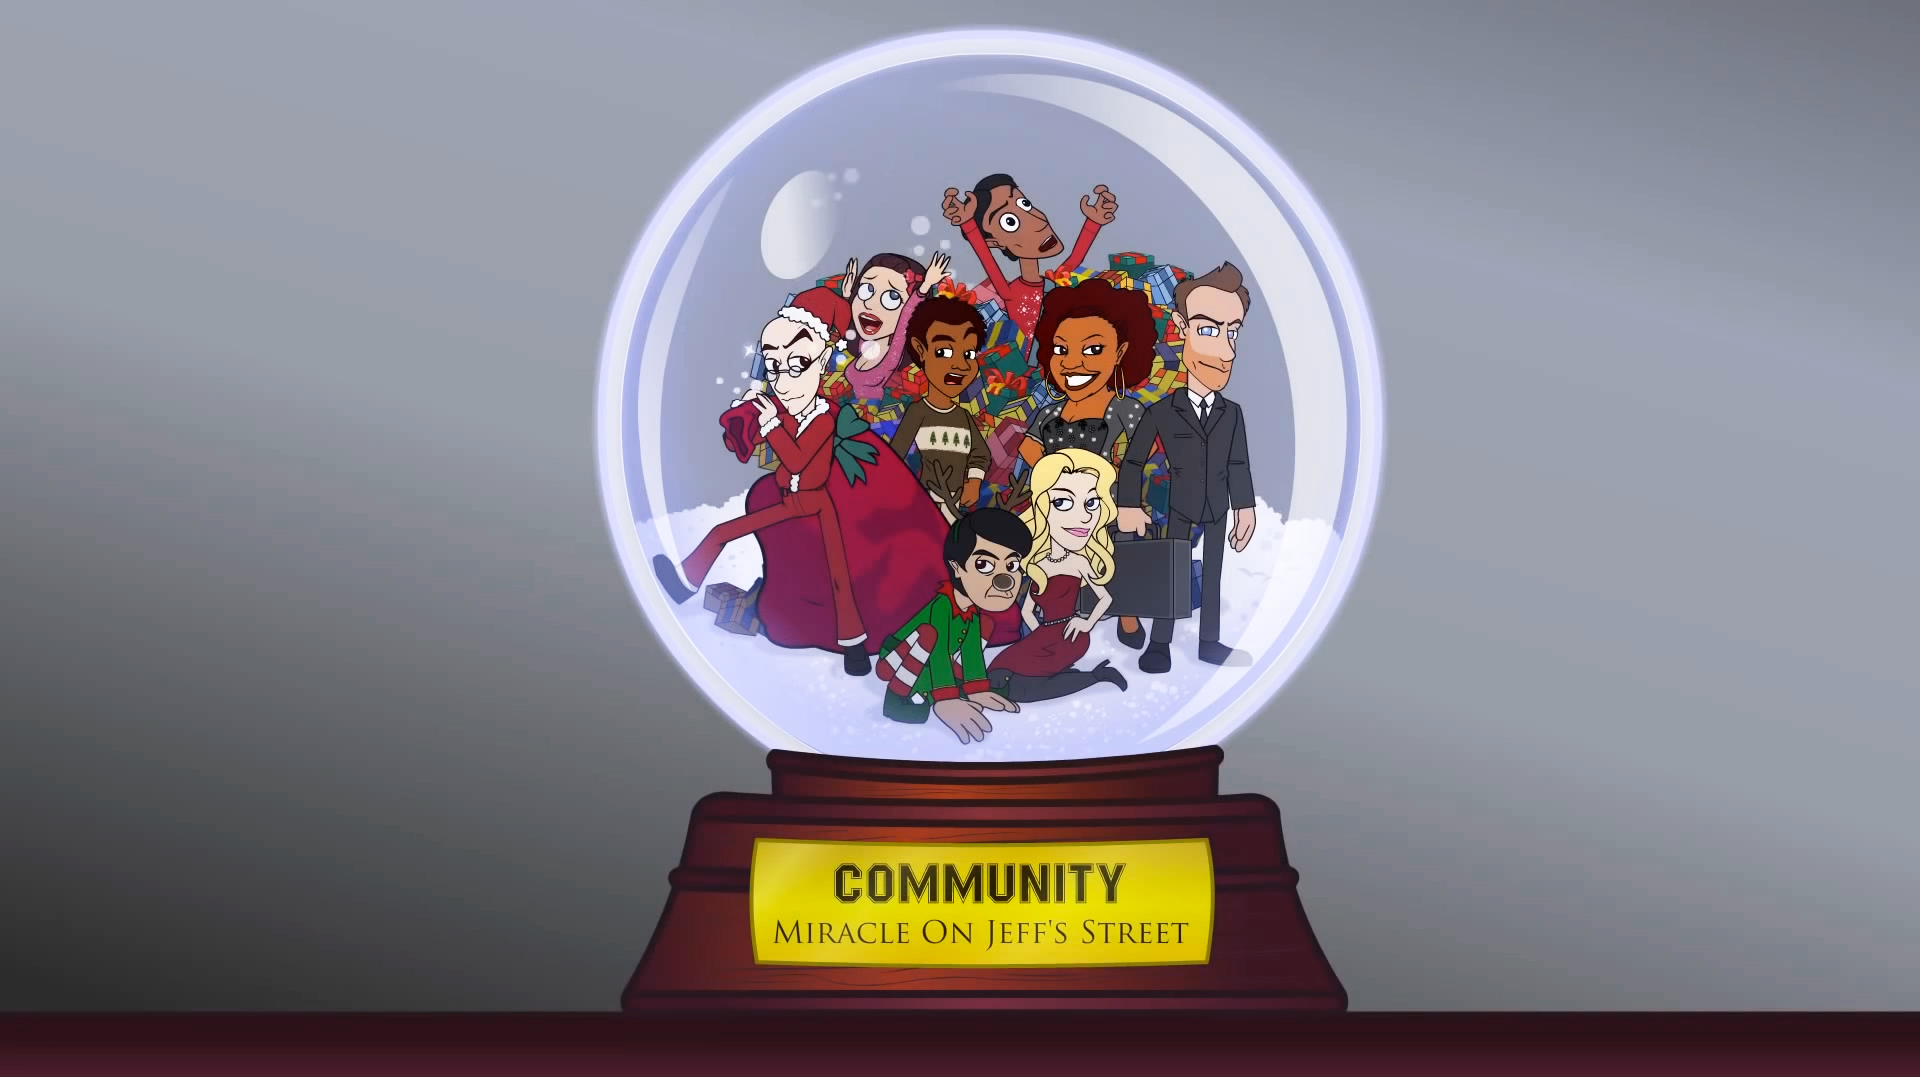 animated-trailer-for-community-season-5-miracle-on-jeffs-street.jpg